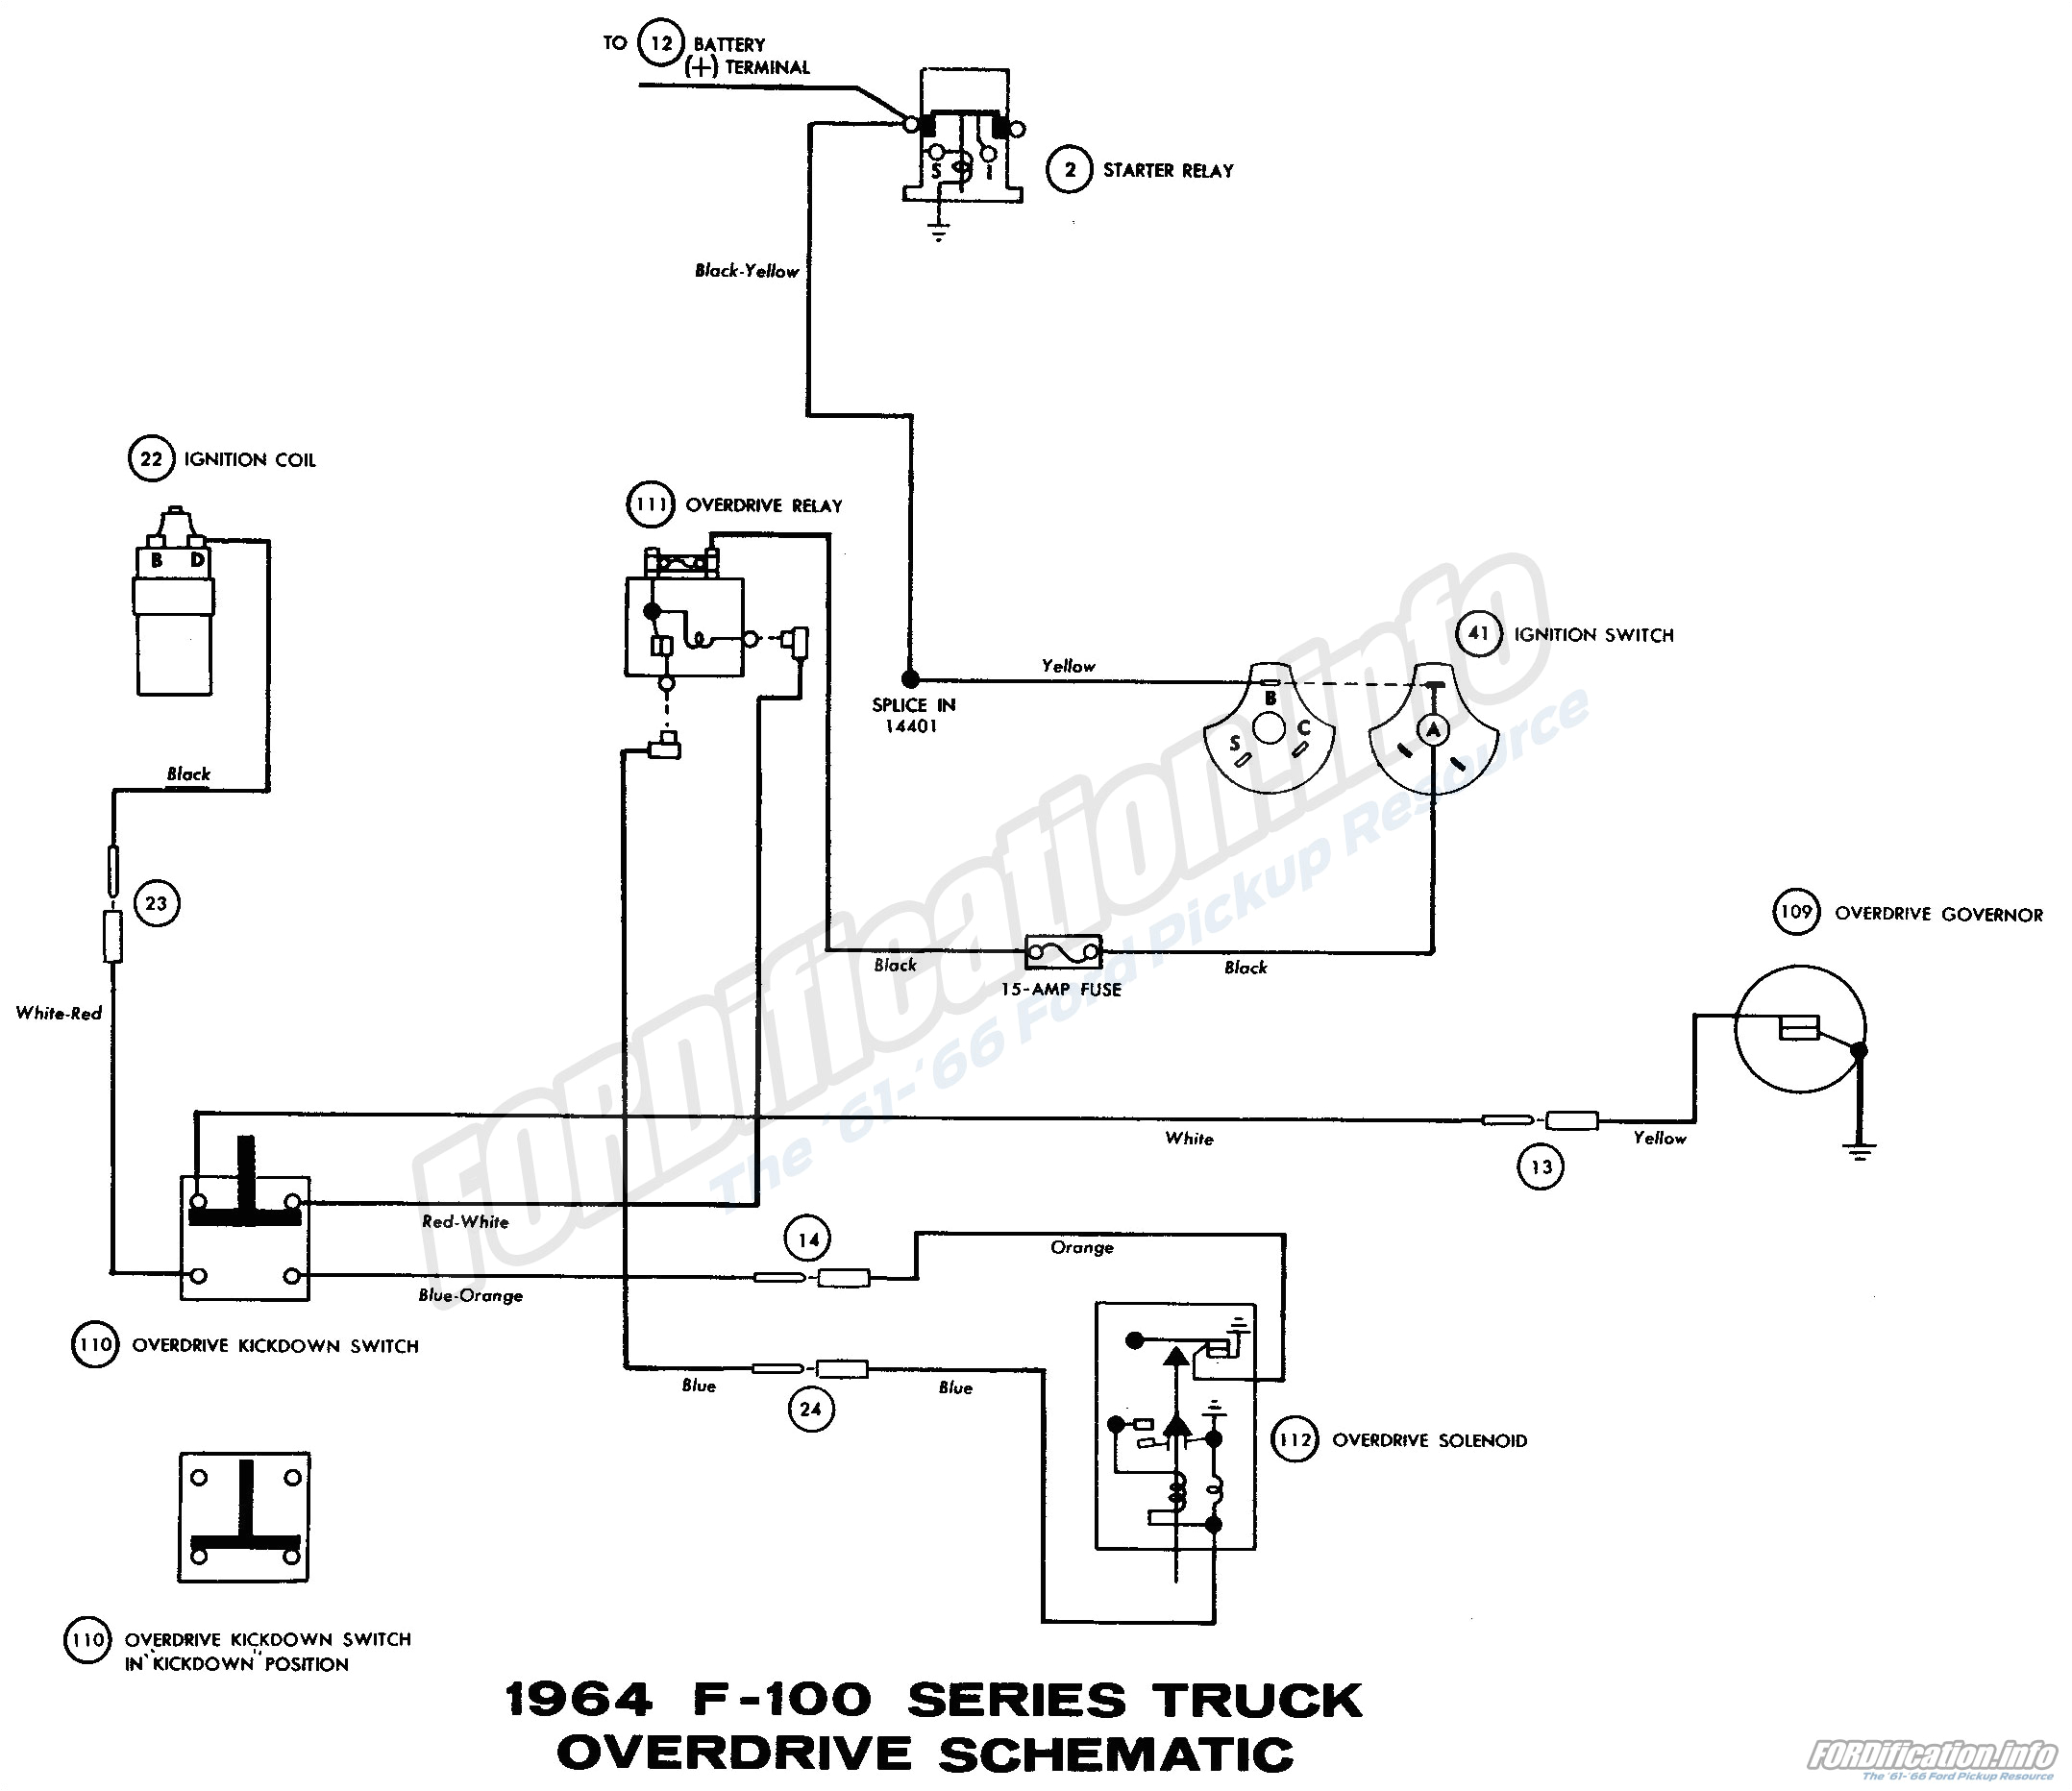 64 ford f100 solenoid wiring wiring diagram fascinating64 ford f100 solenoid wiring wiring diagram user 64